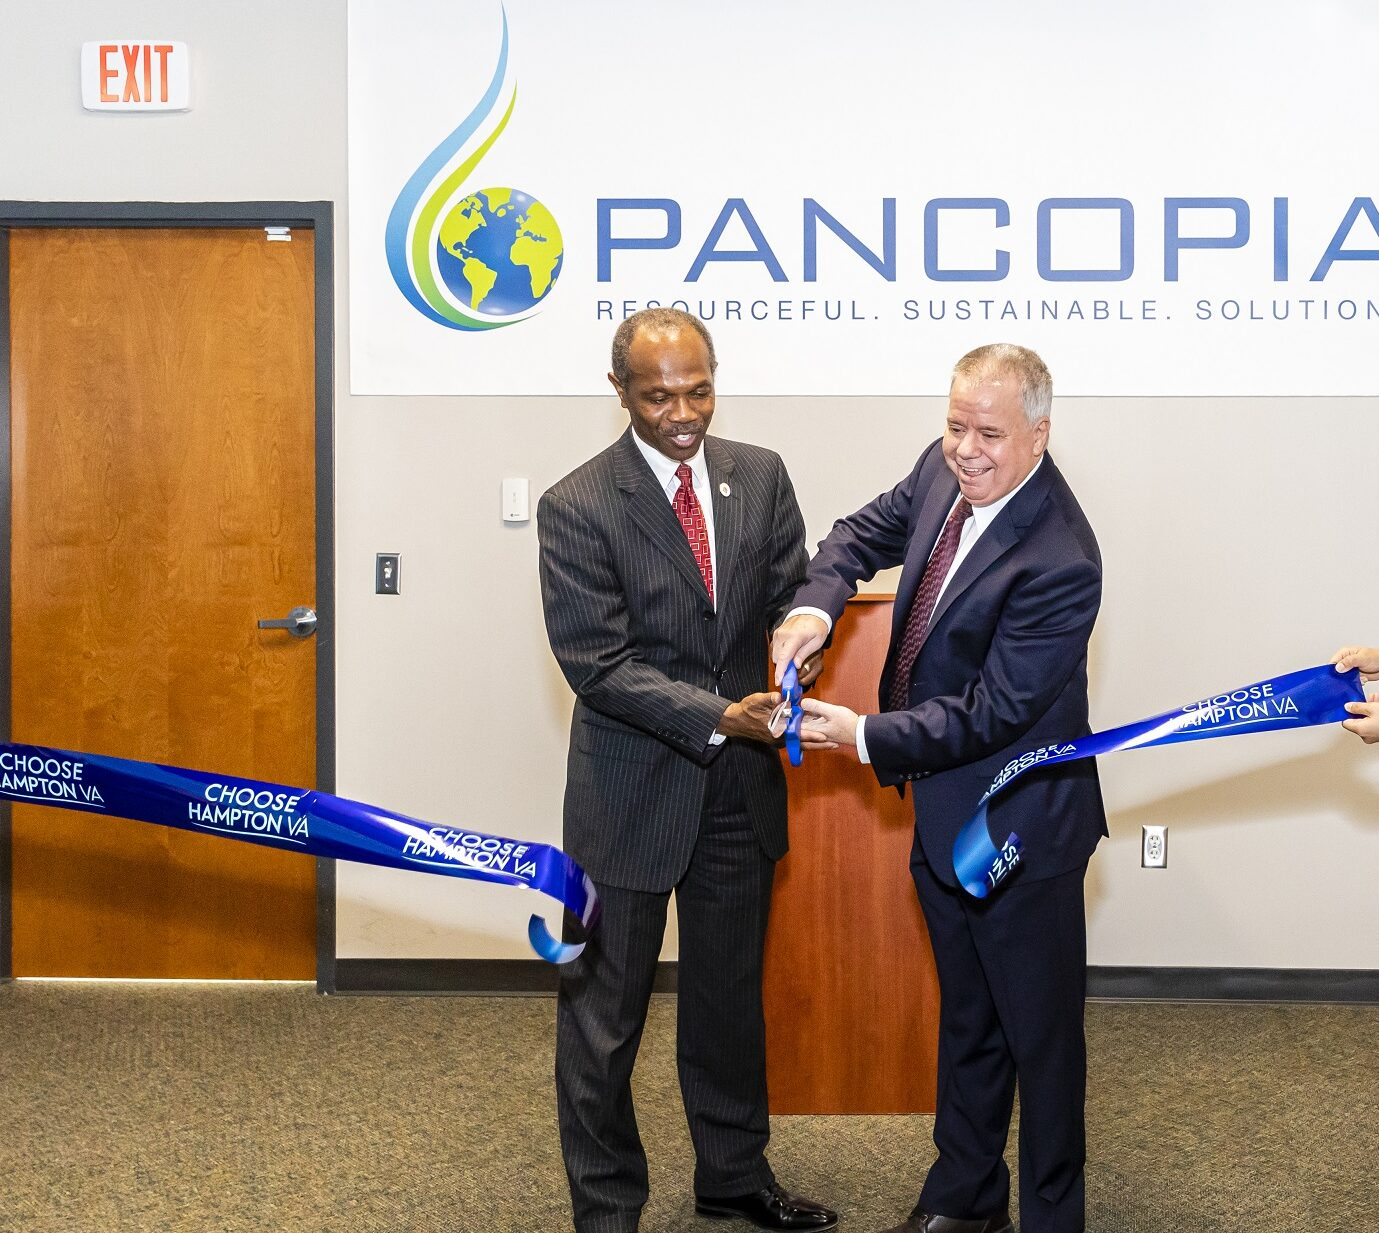 Ribbon-Cutting for New Pancopia Facilities